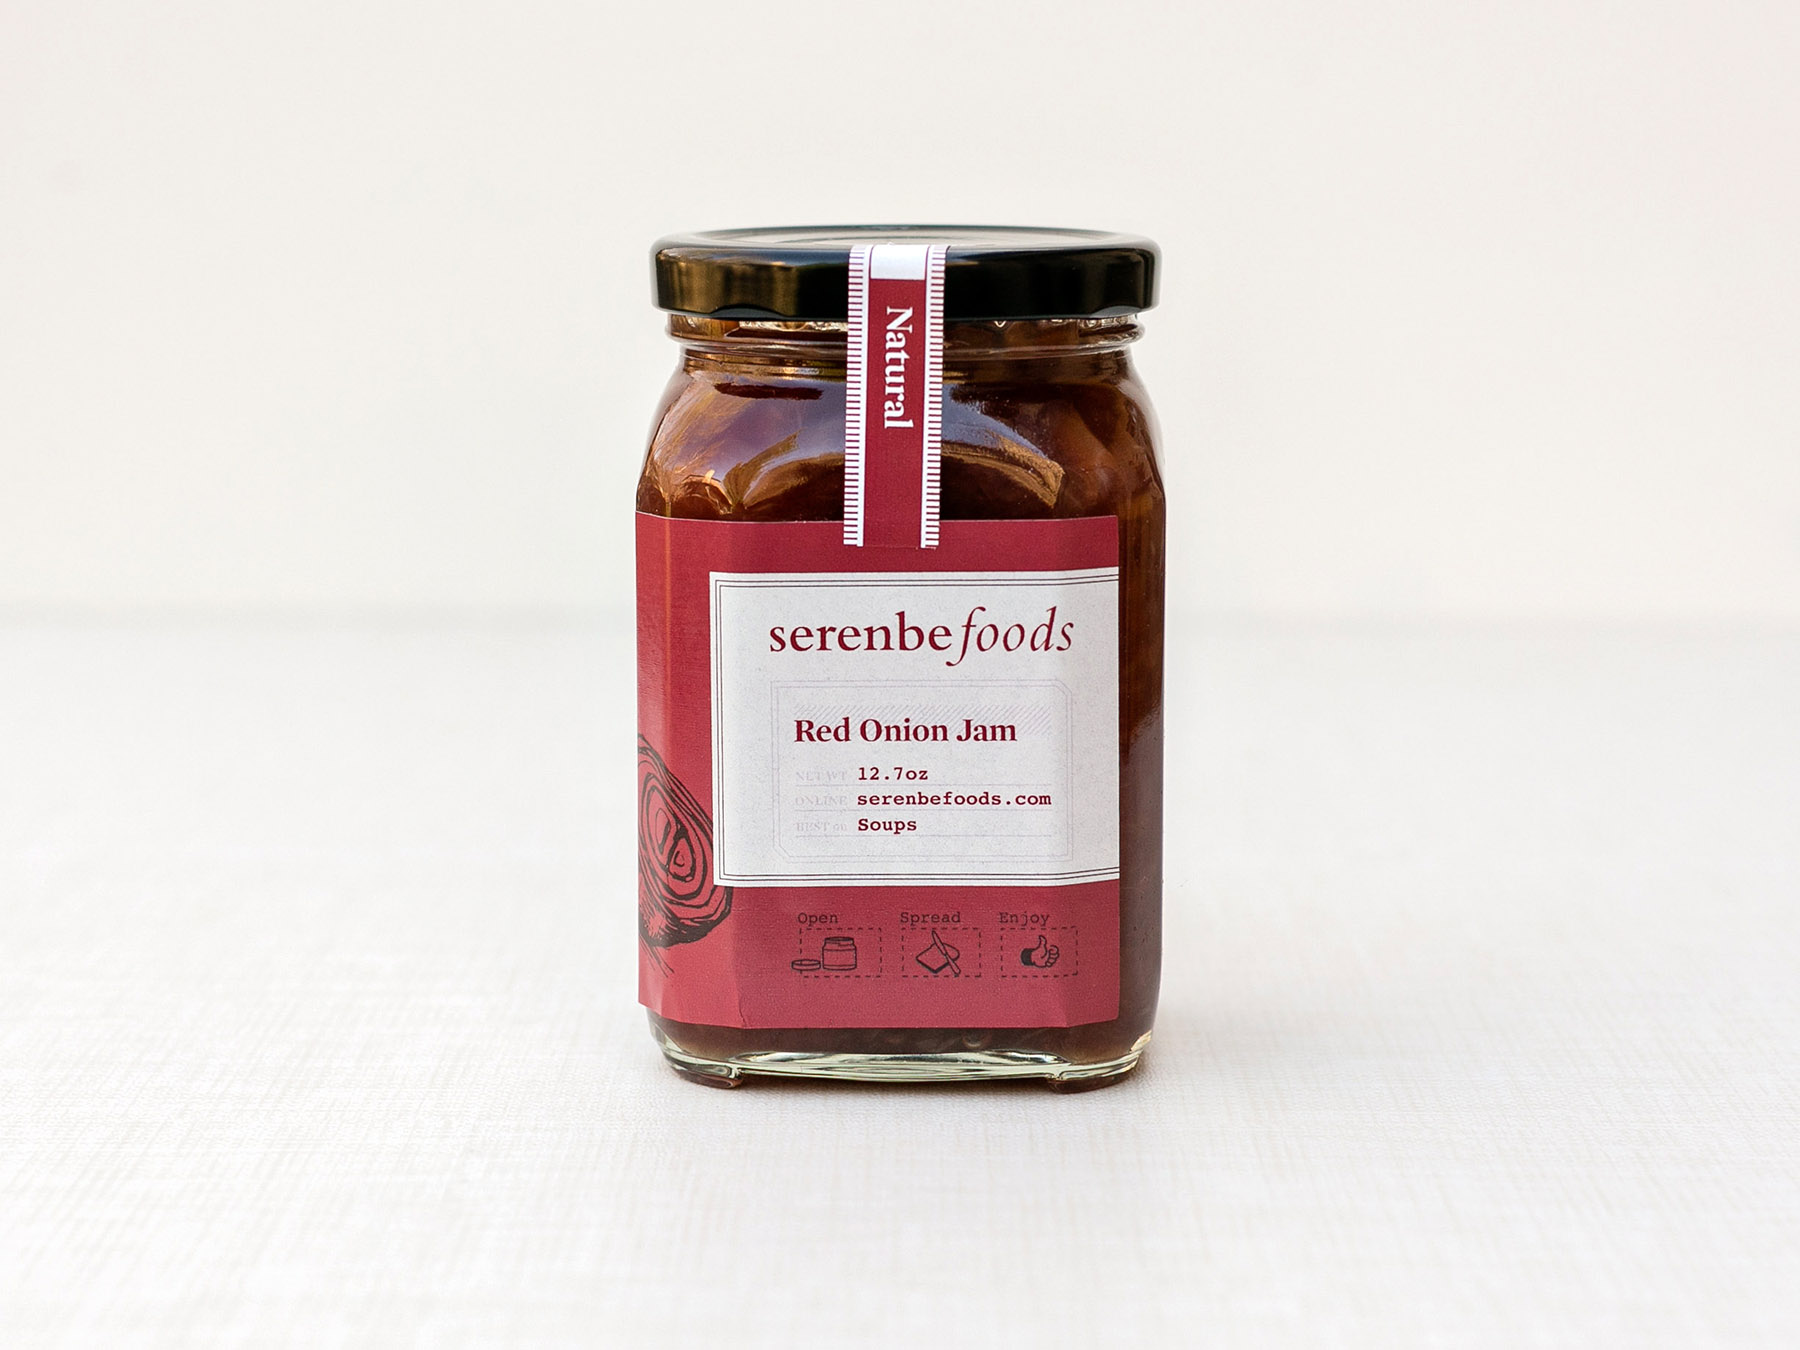 Serenbe Foods red onion jam jar label design